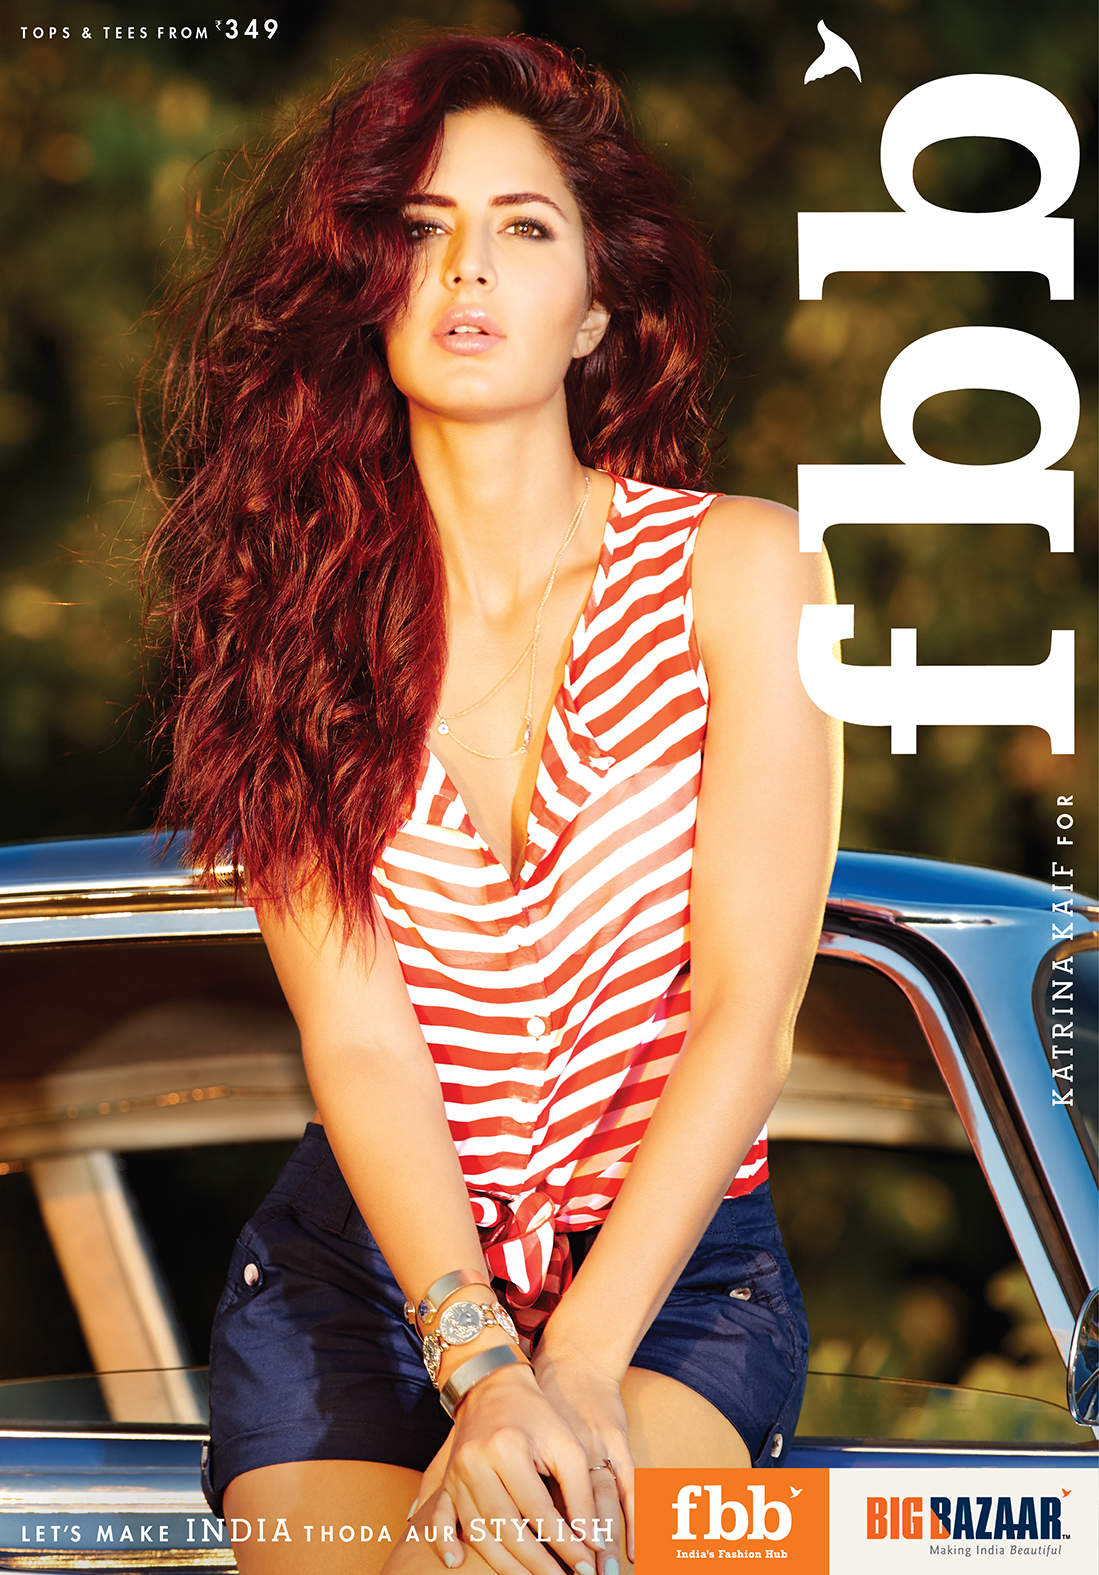 Katrina Kaif Smoking Hot Fbb India Photo Shoot-5524